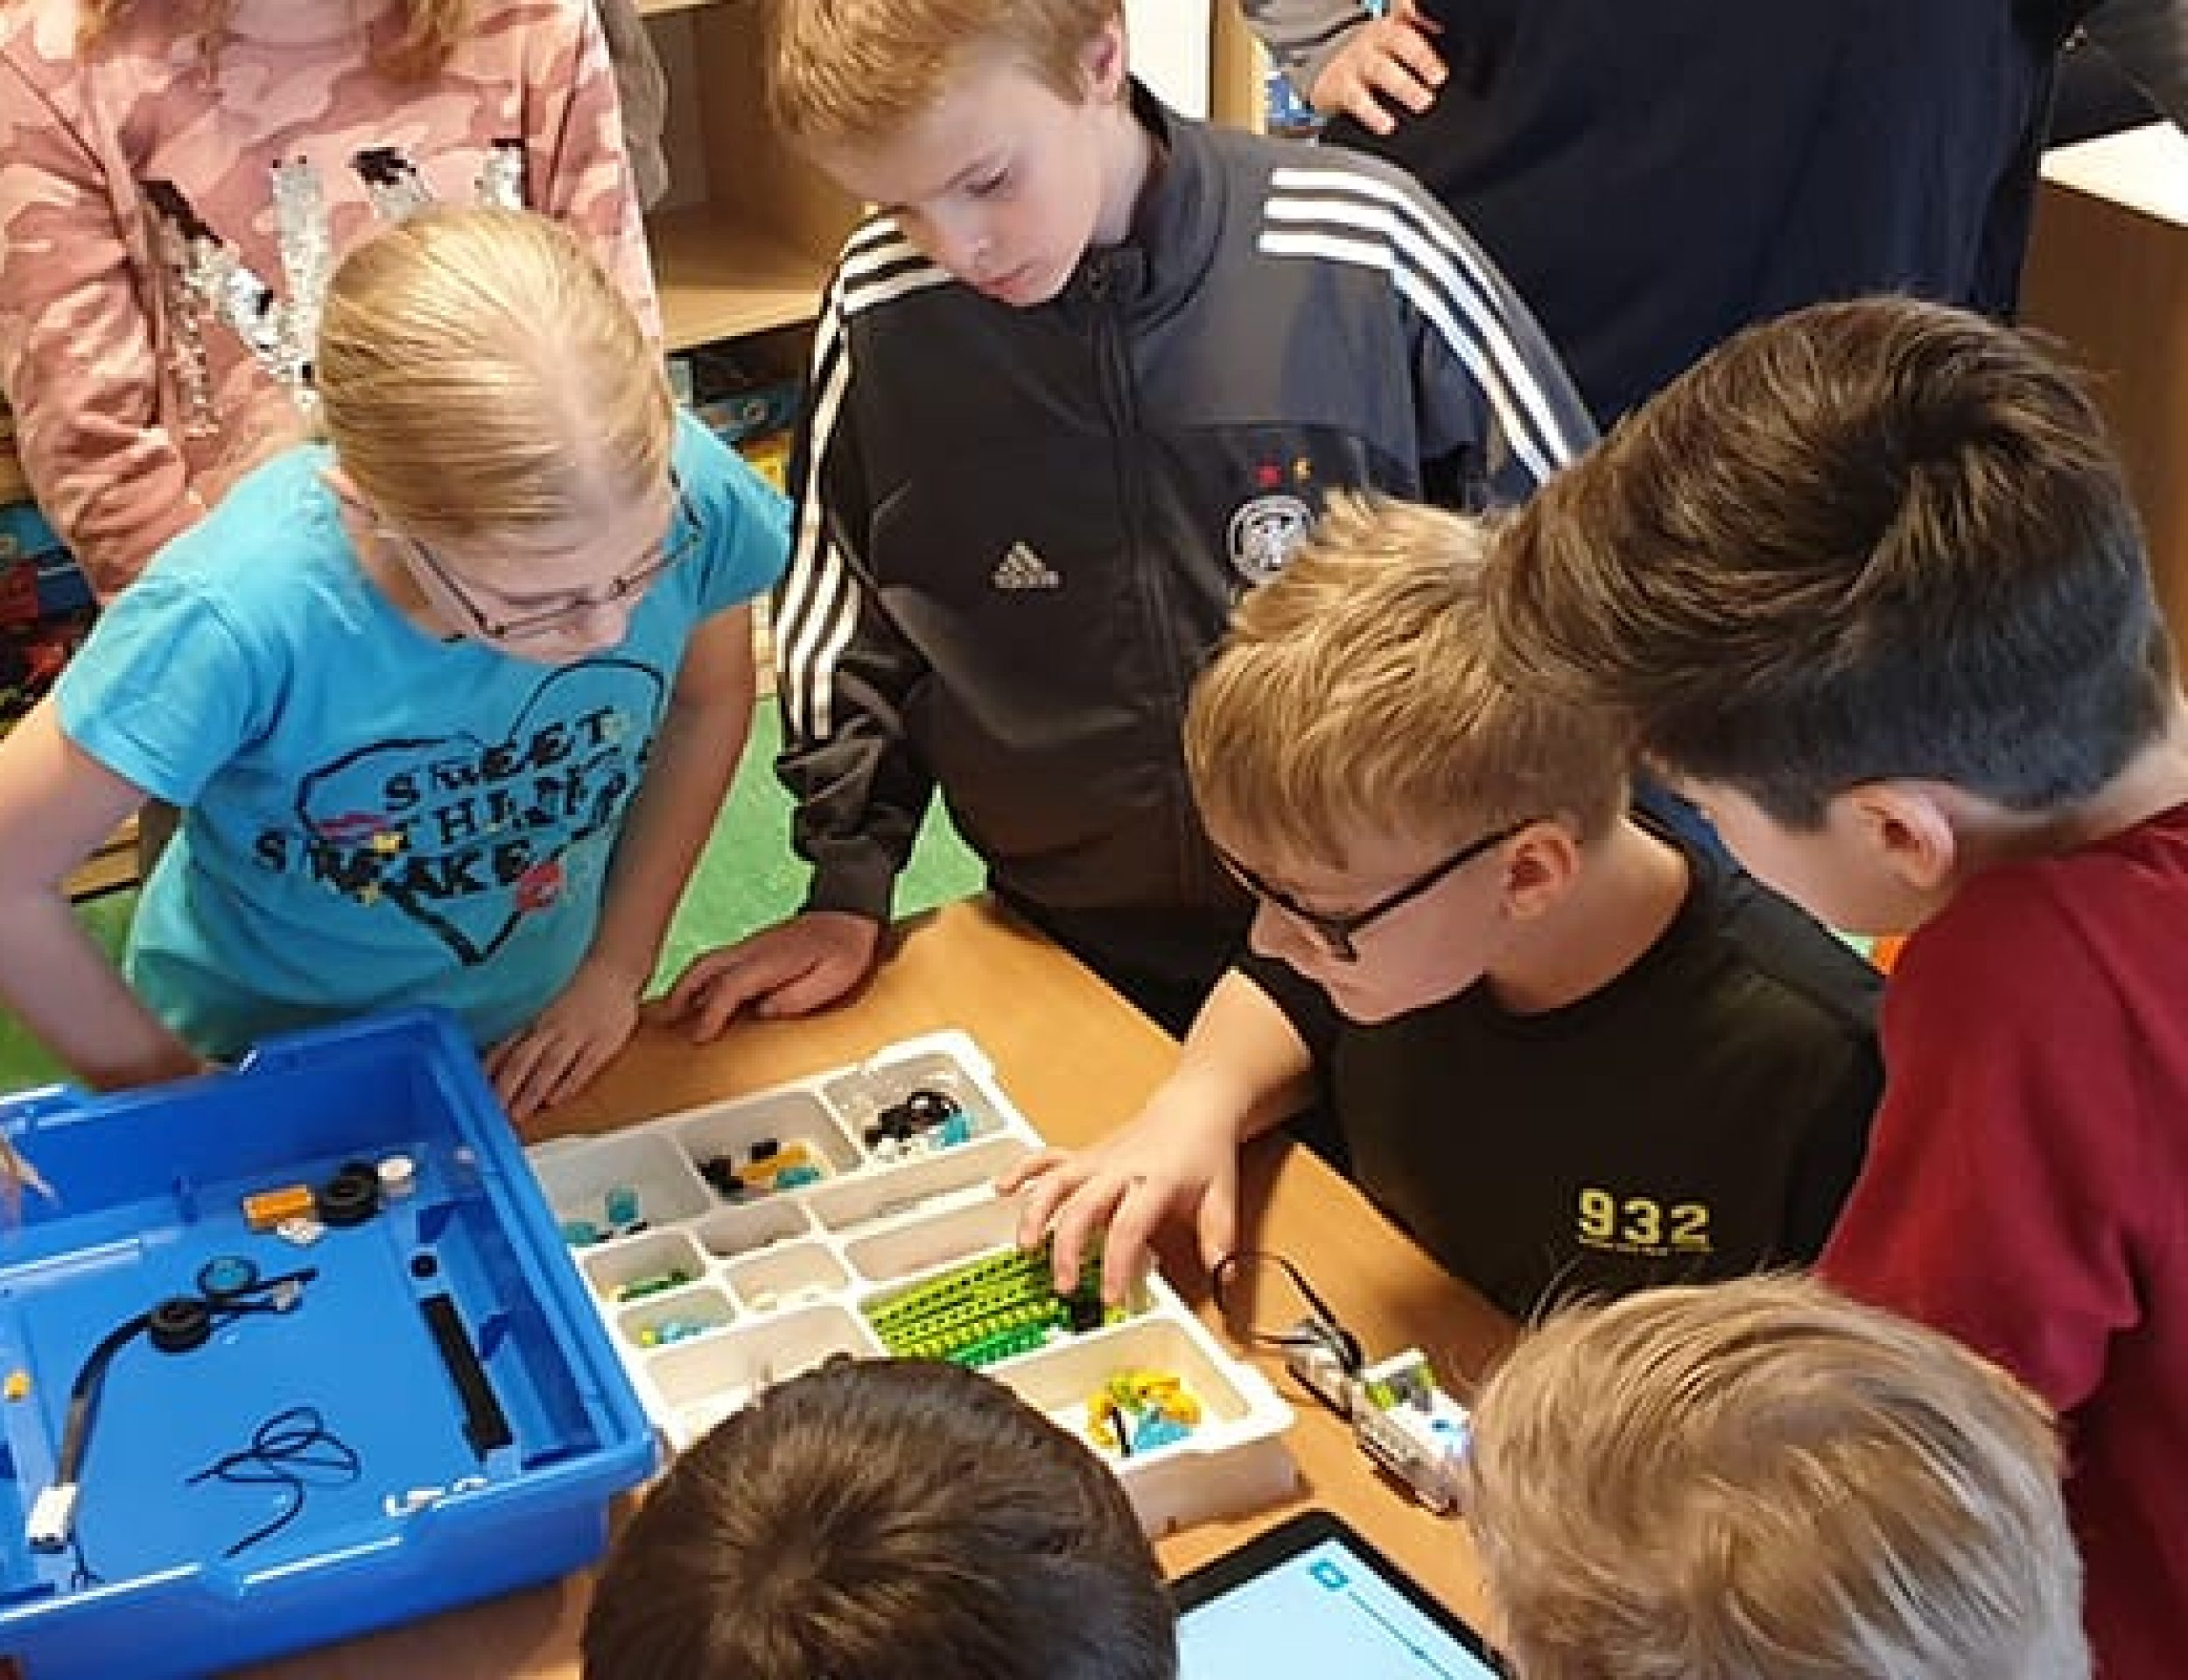 Projektpräsentationstag Lego Education